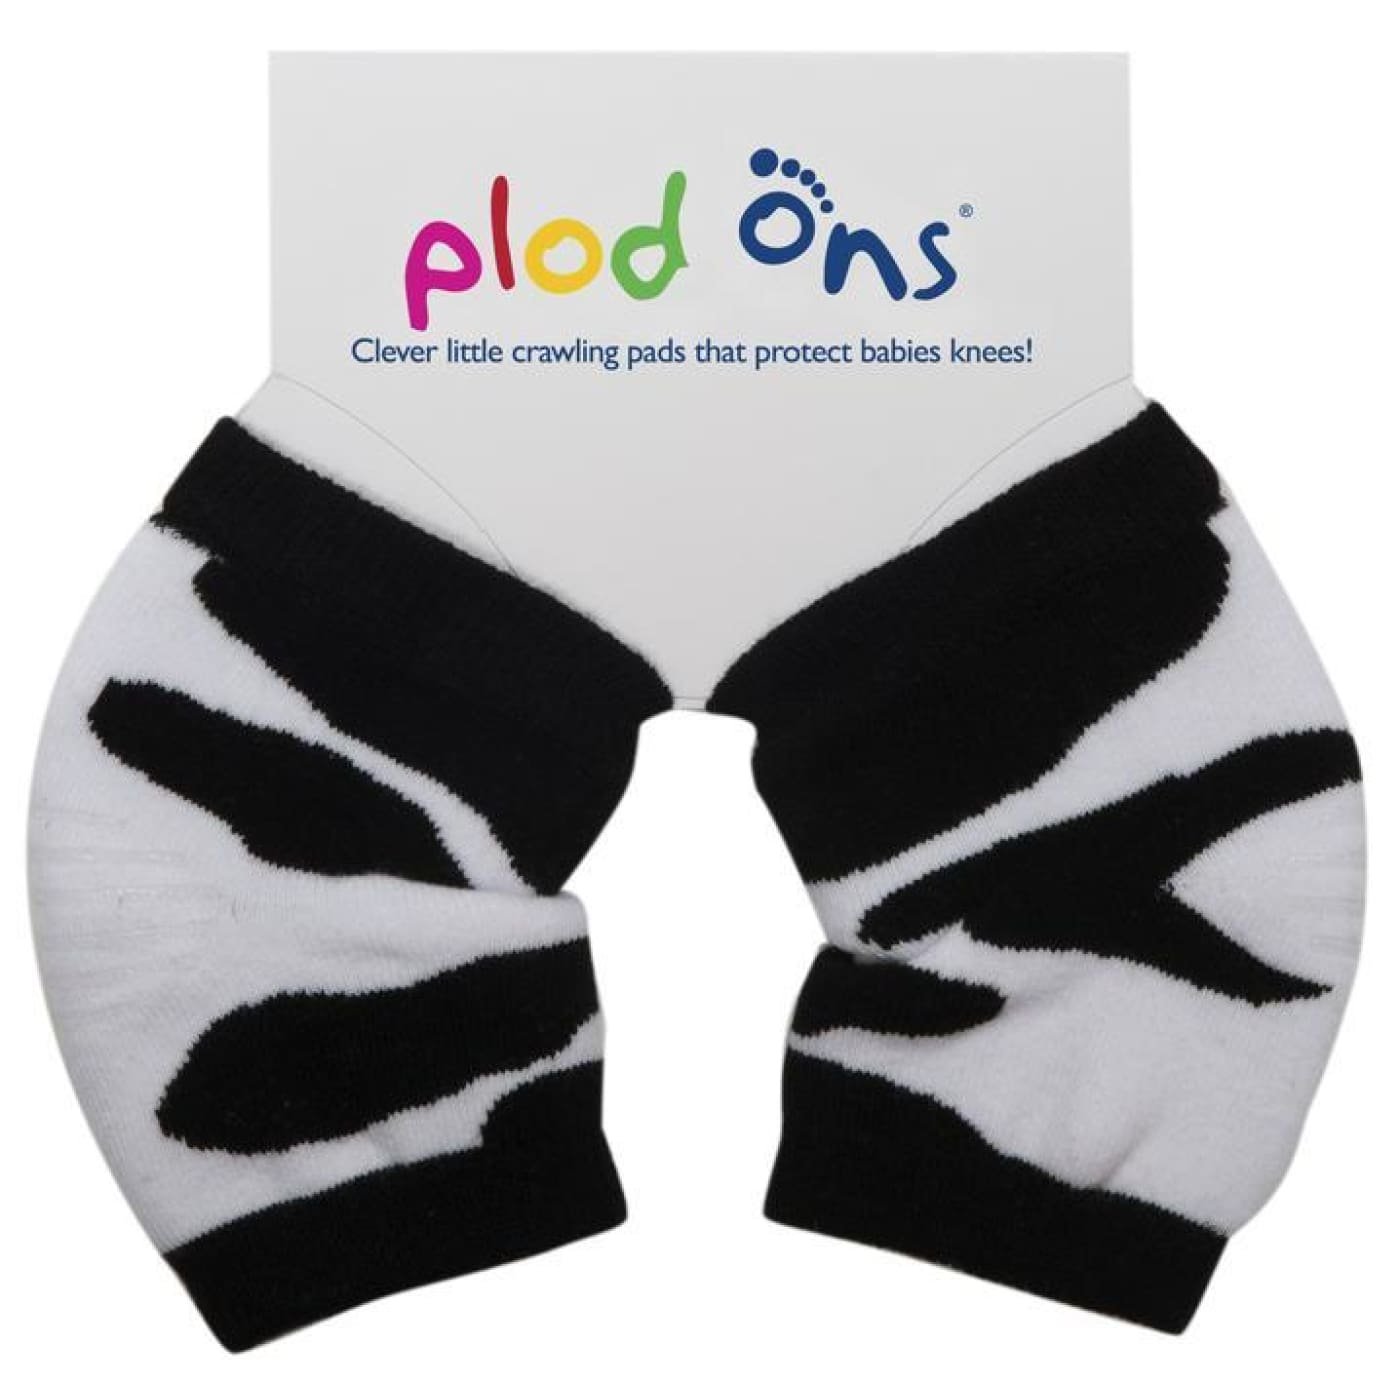 Plod-Ons Designer - Cow - BABY & TODDLER CLOTHING - MITTENS/SOCKS/SHOES